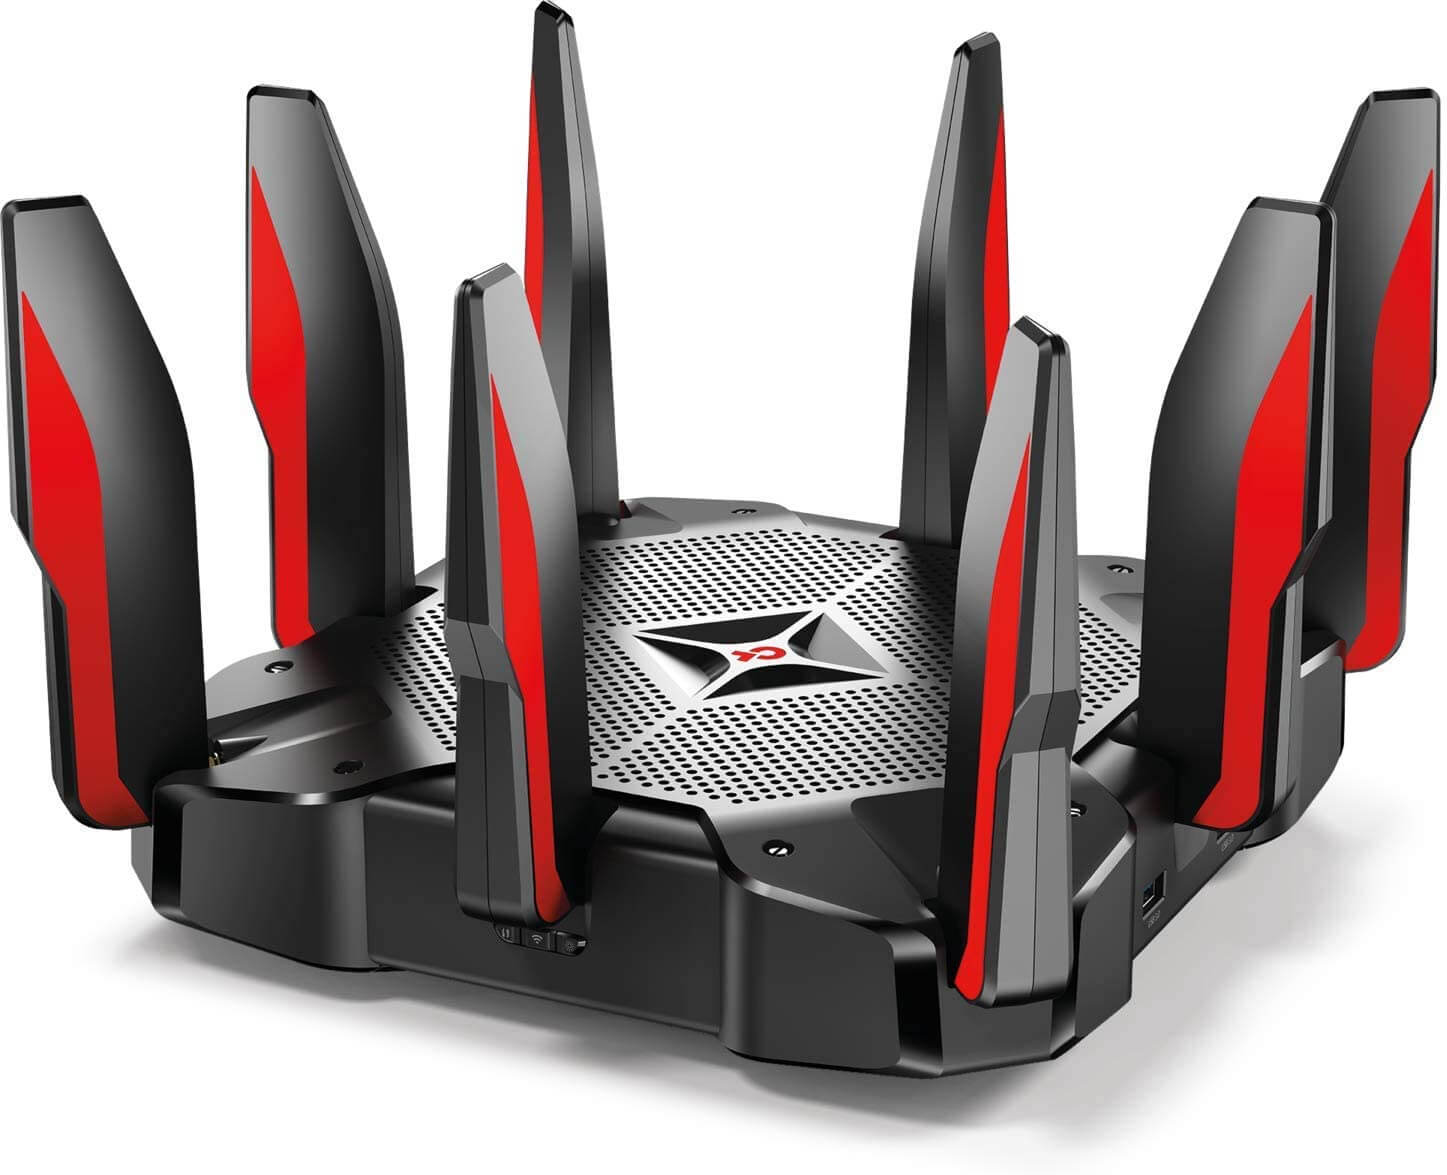 TP-Link AC5400 Router for Multiple Xbox Ones